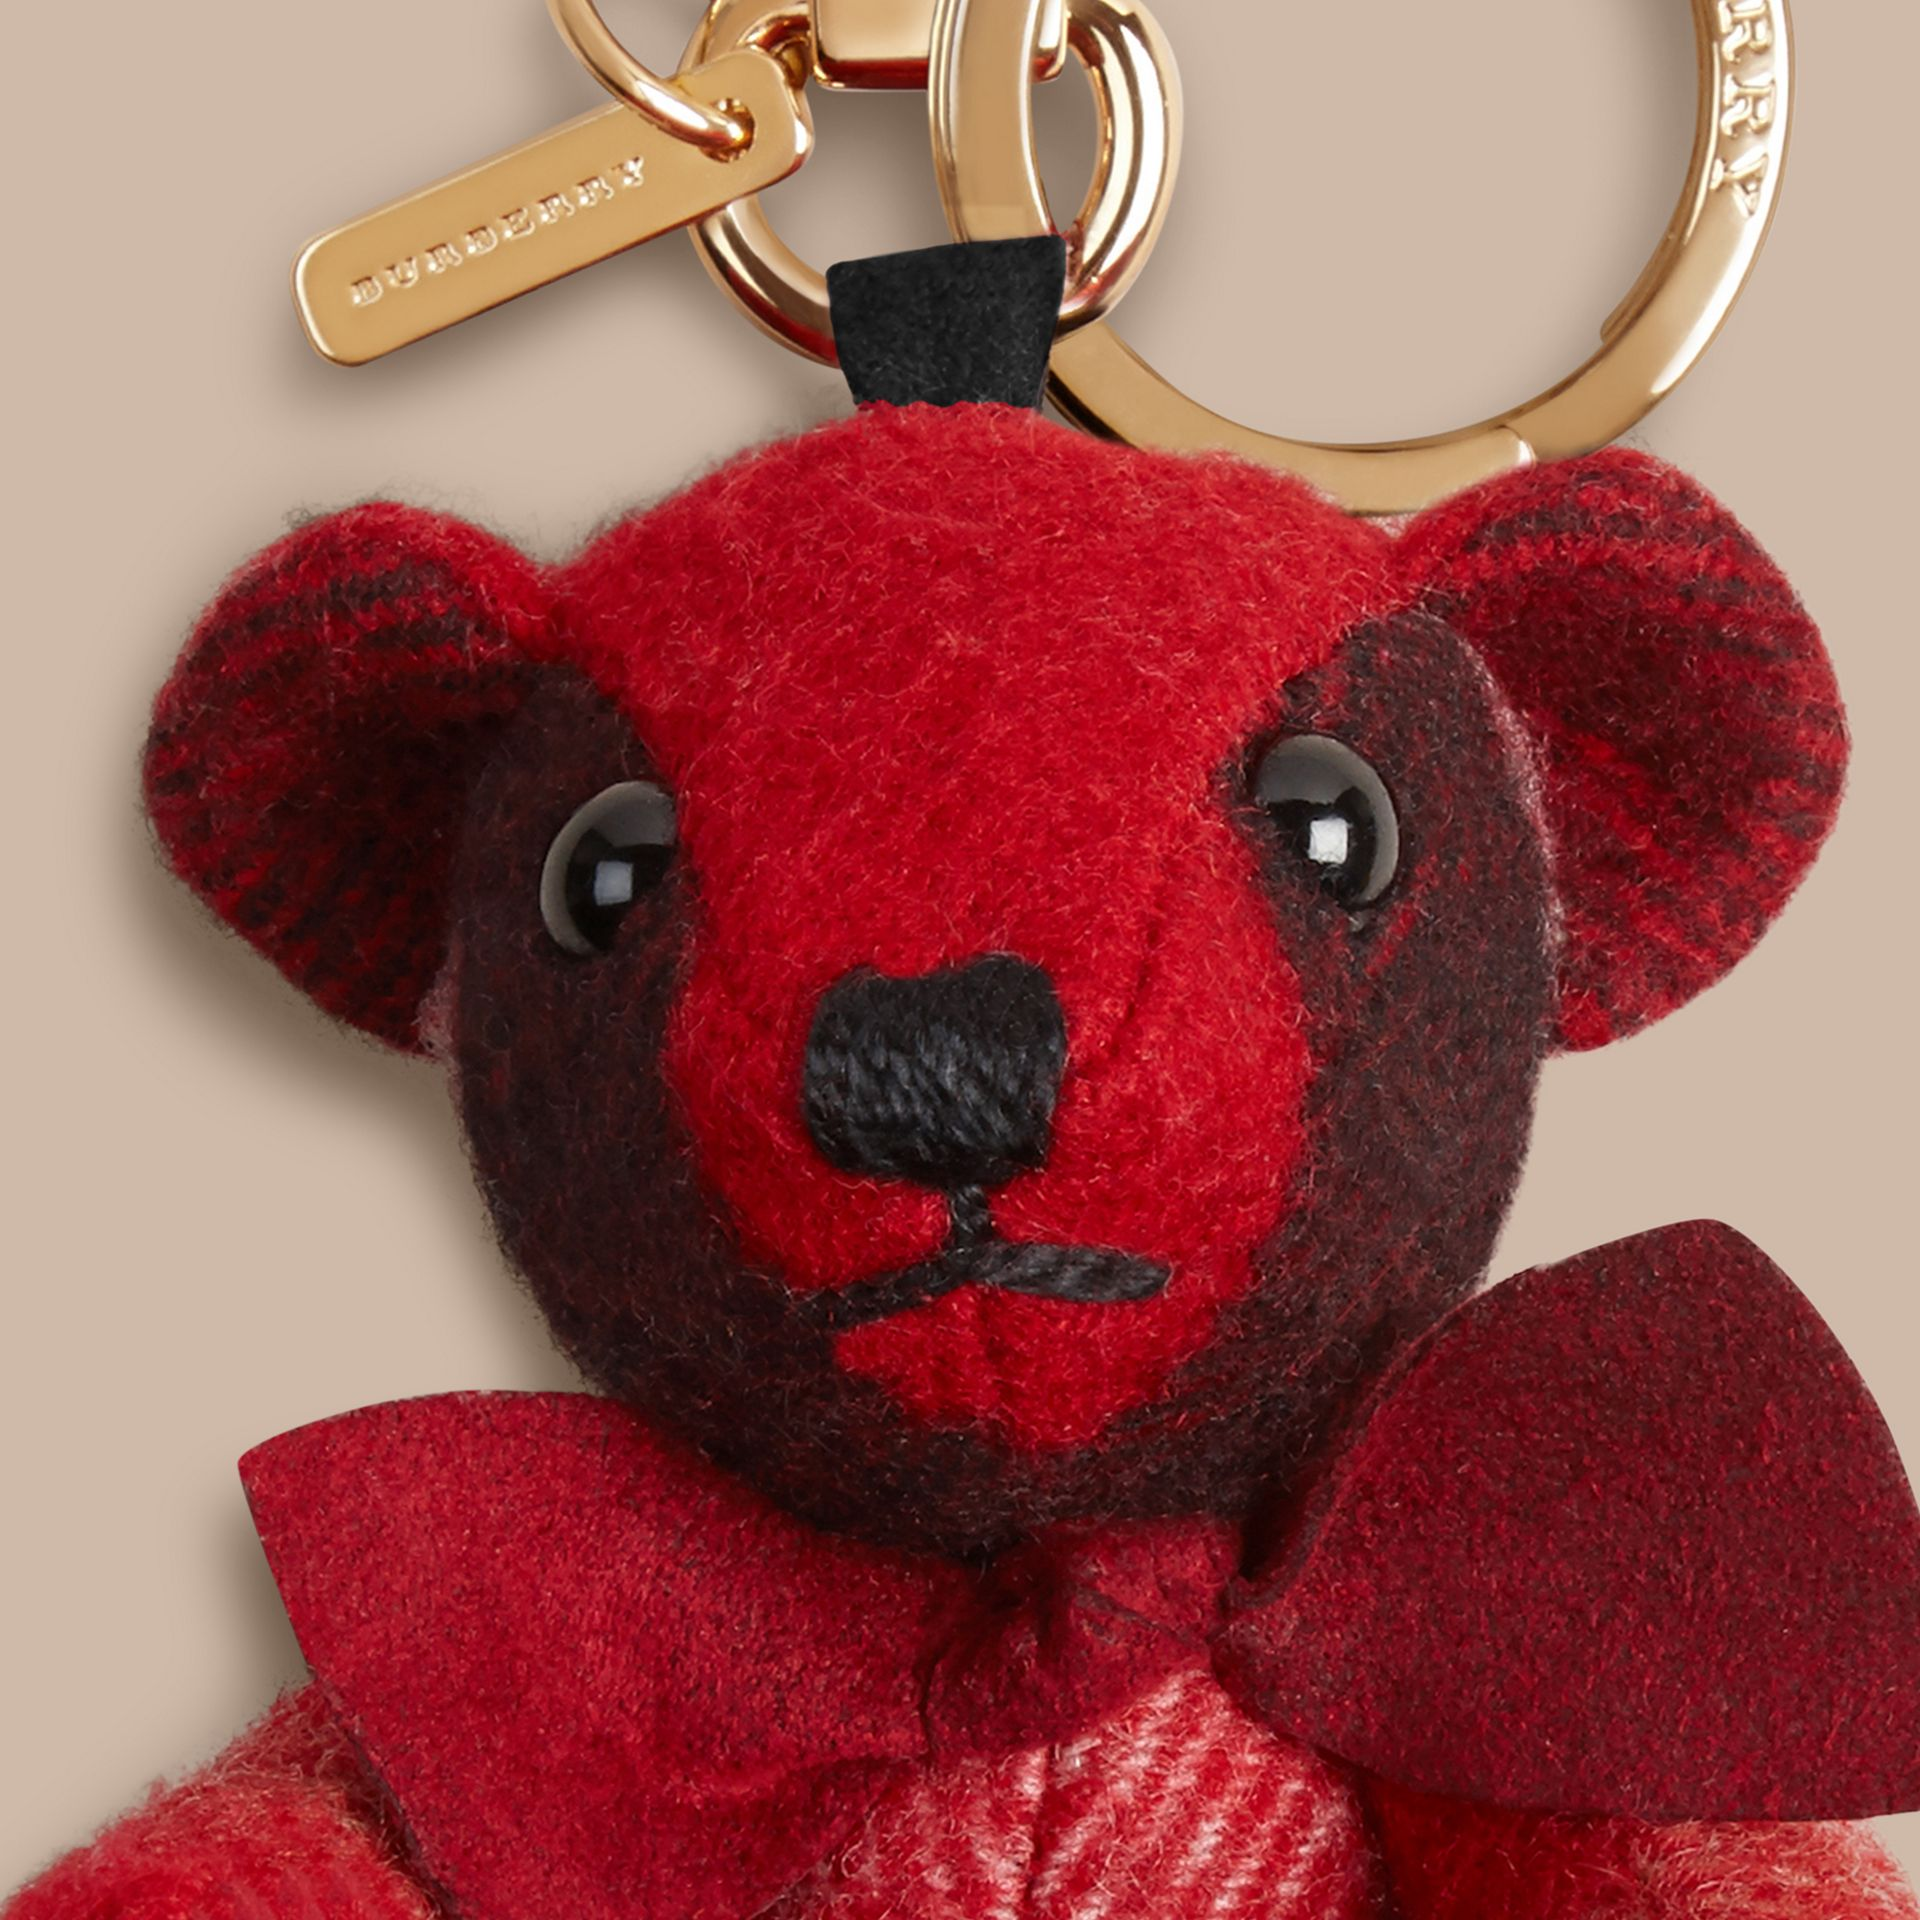 Bijou porte-clés Thomas Bear en cachemire à motif check (Rouge Parade) - photo de la galerie 2